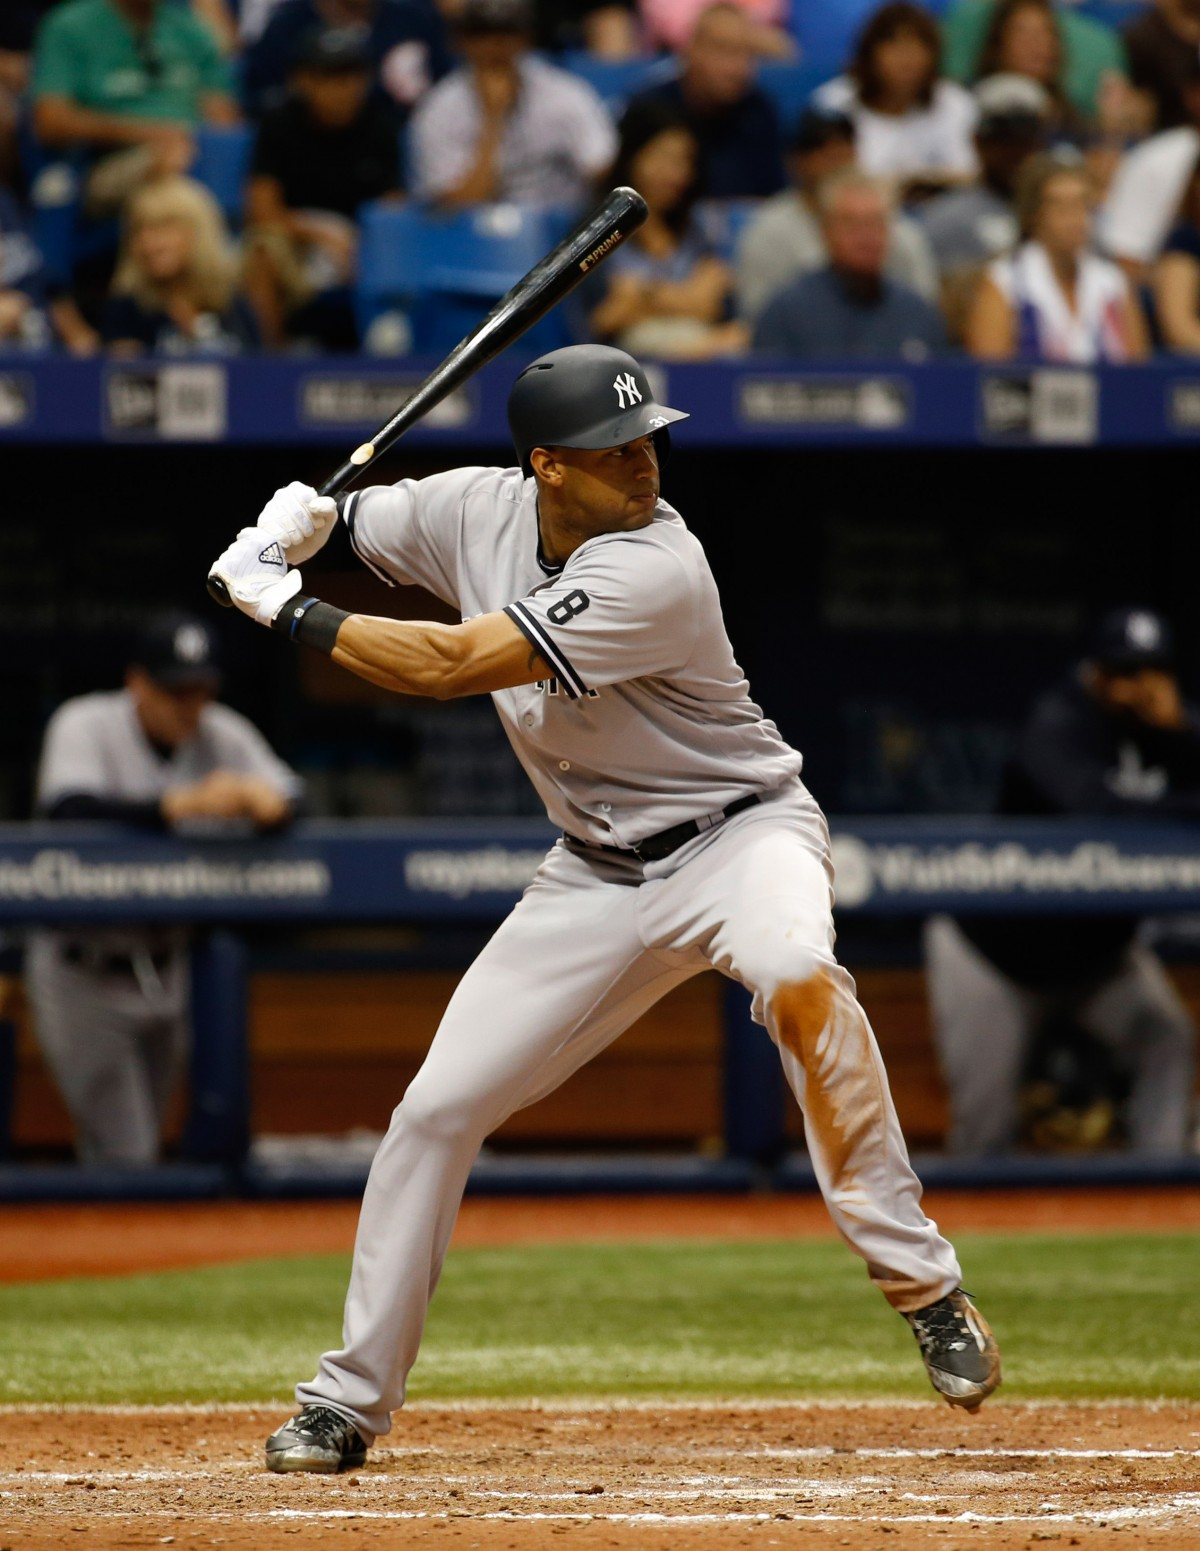 MLB: New York Yankees at Tampa Bay Rays